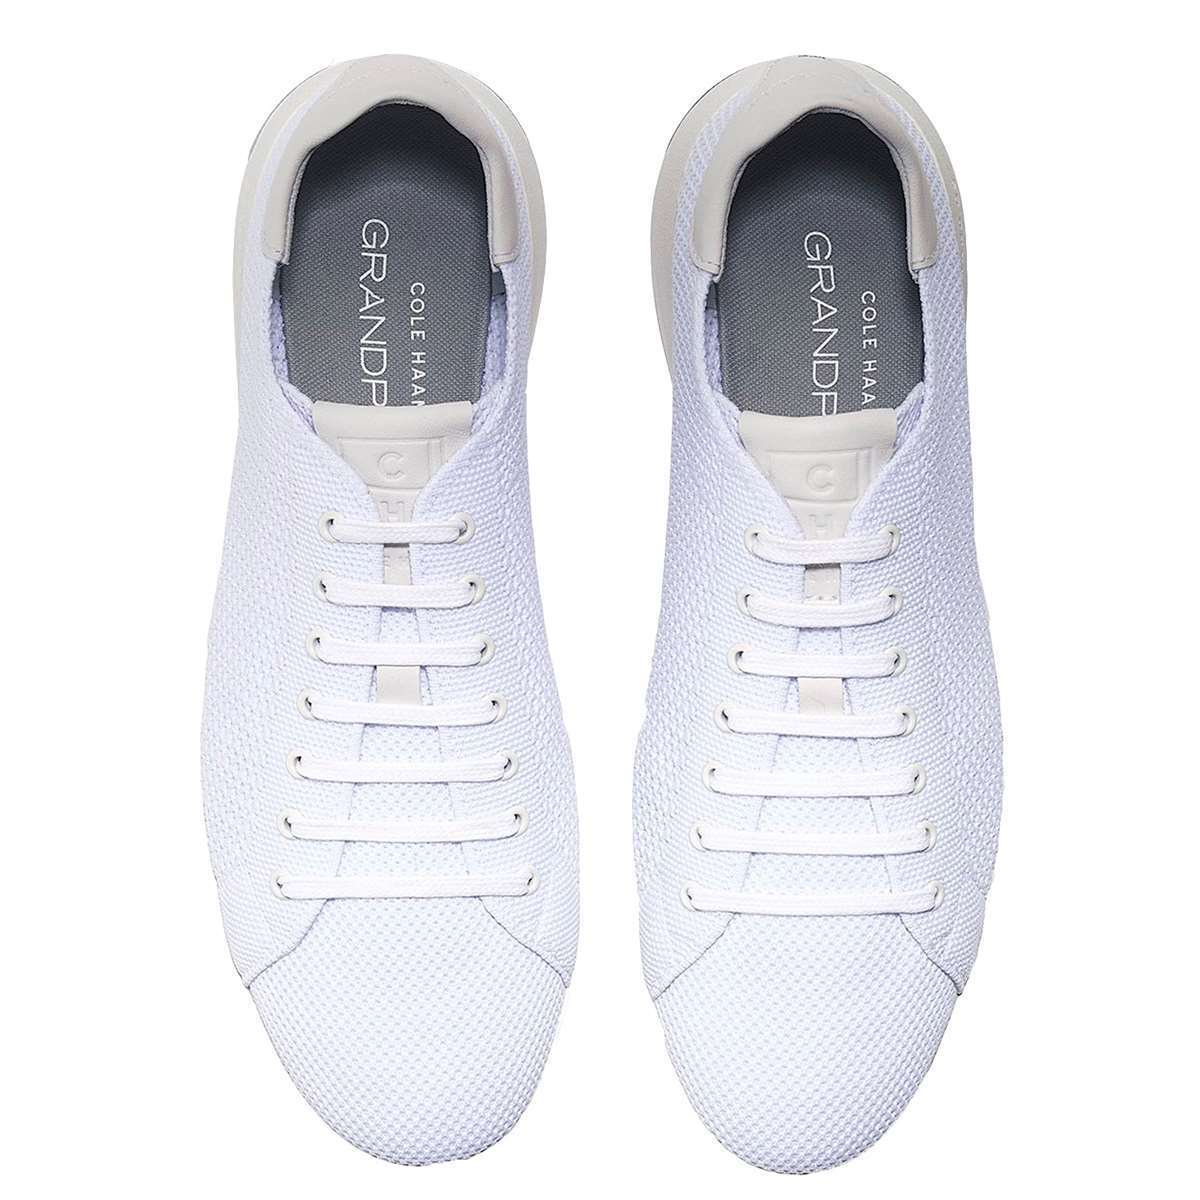 Cole Haan Damens Sneakers Schuhes Casual Grandpro Stitchlite Sneakers Damens NEW Authentic 6ab372